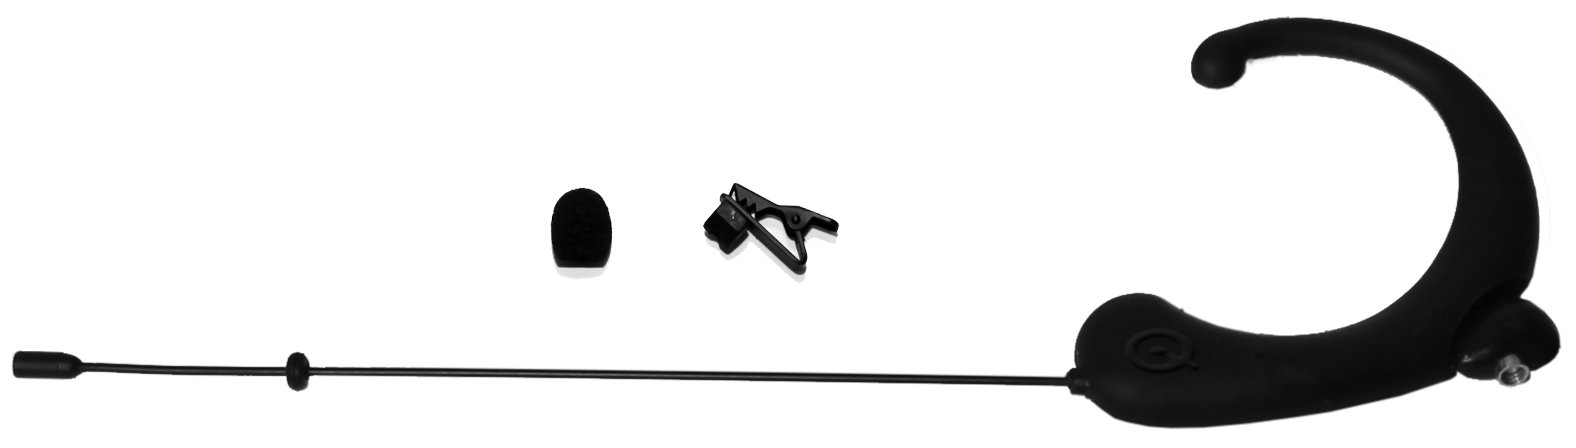 Omnidirectional Single Headworn Microphone in Black with -45dB Sensitivity and NO Adapter (Required)